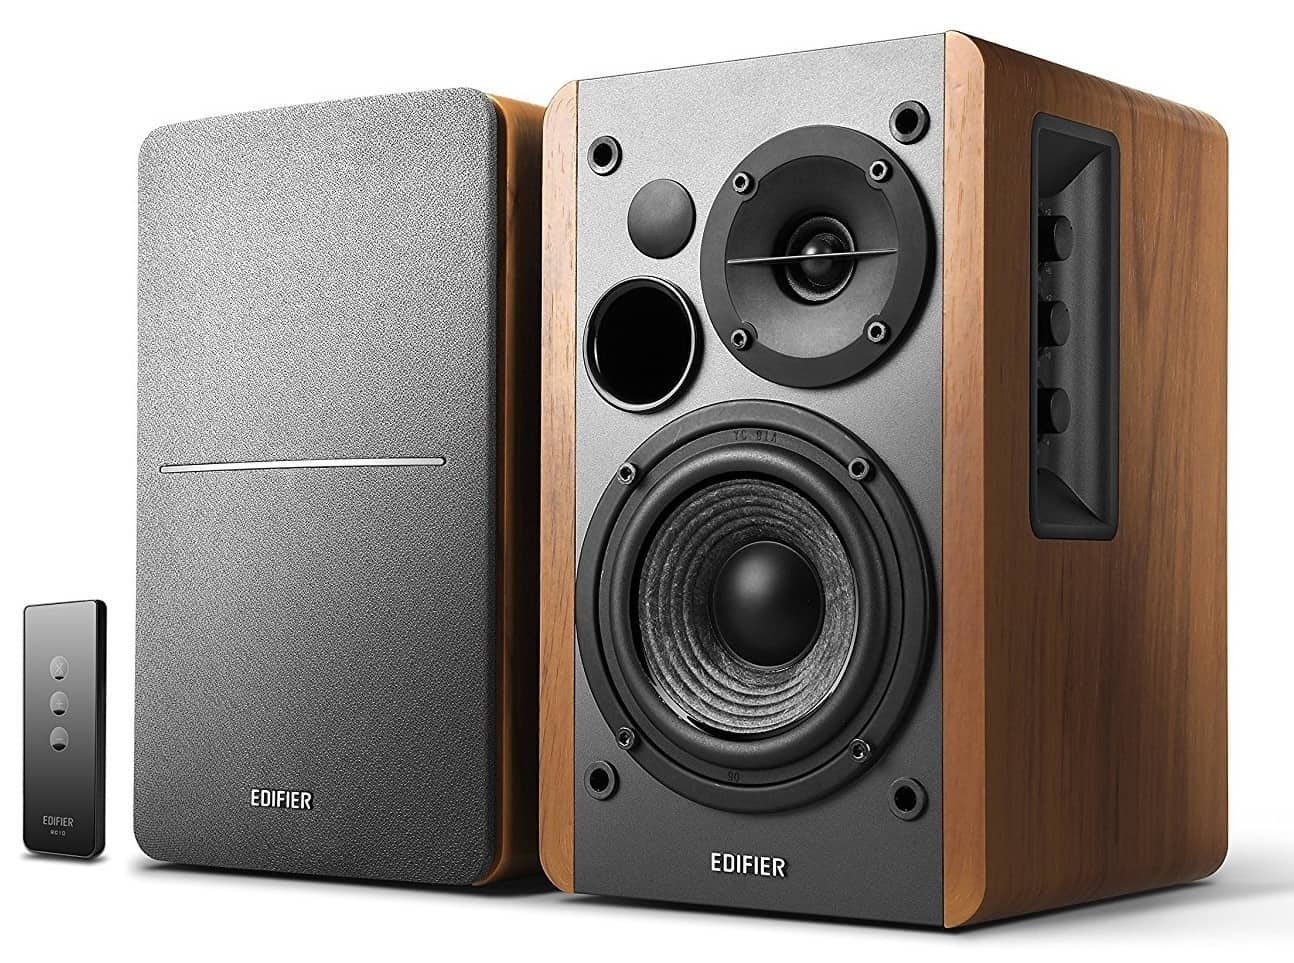 Best Powered Bookshelf Speakers Under 100 – Edifier